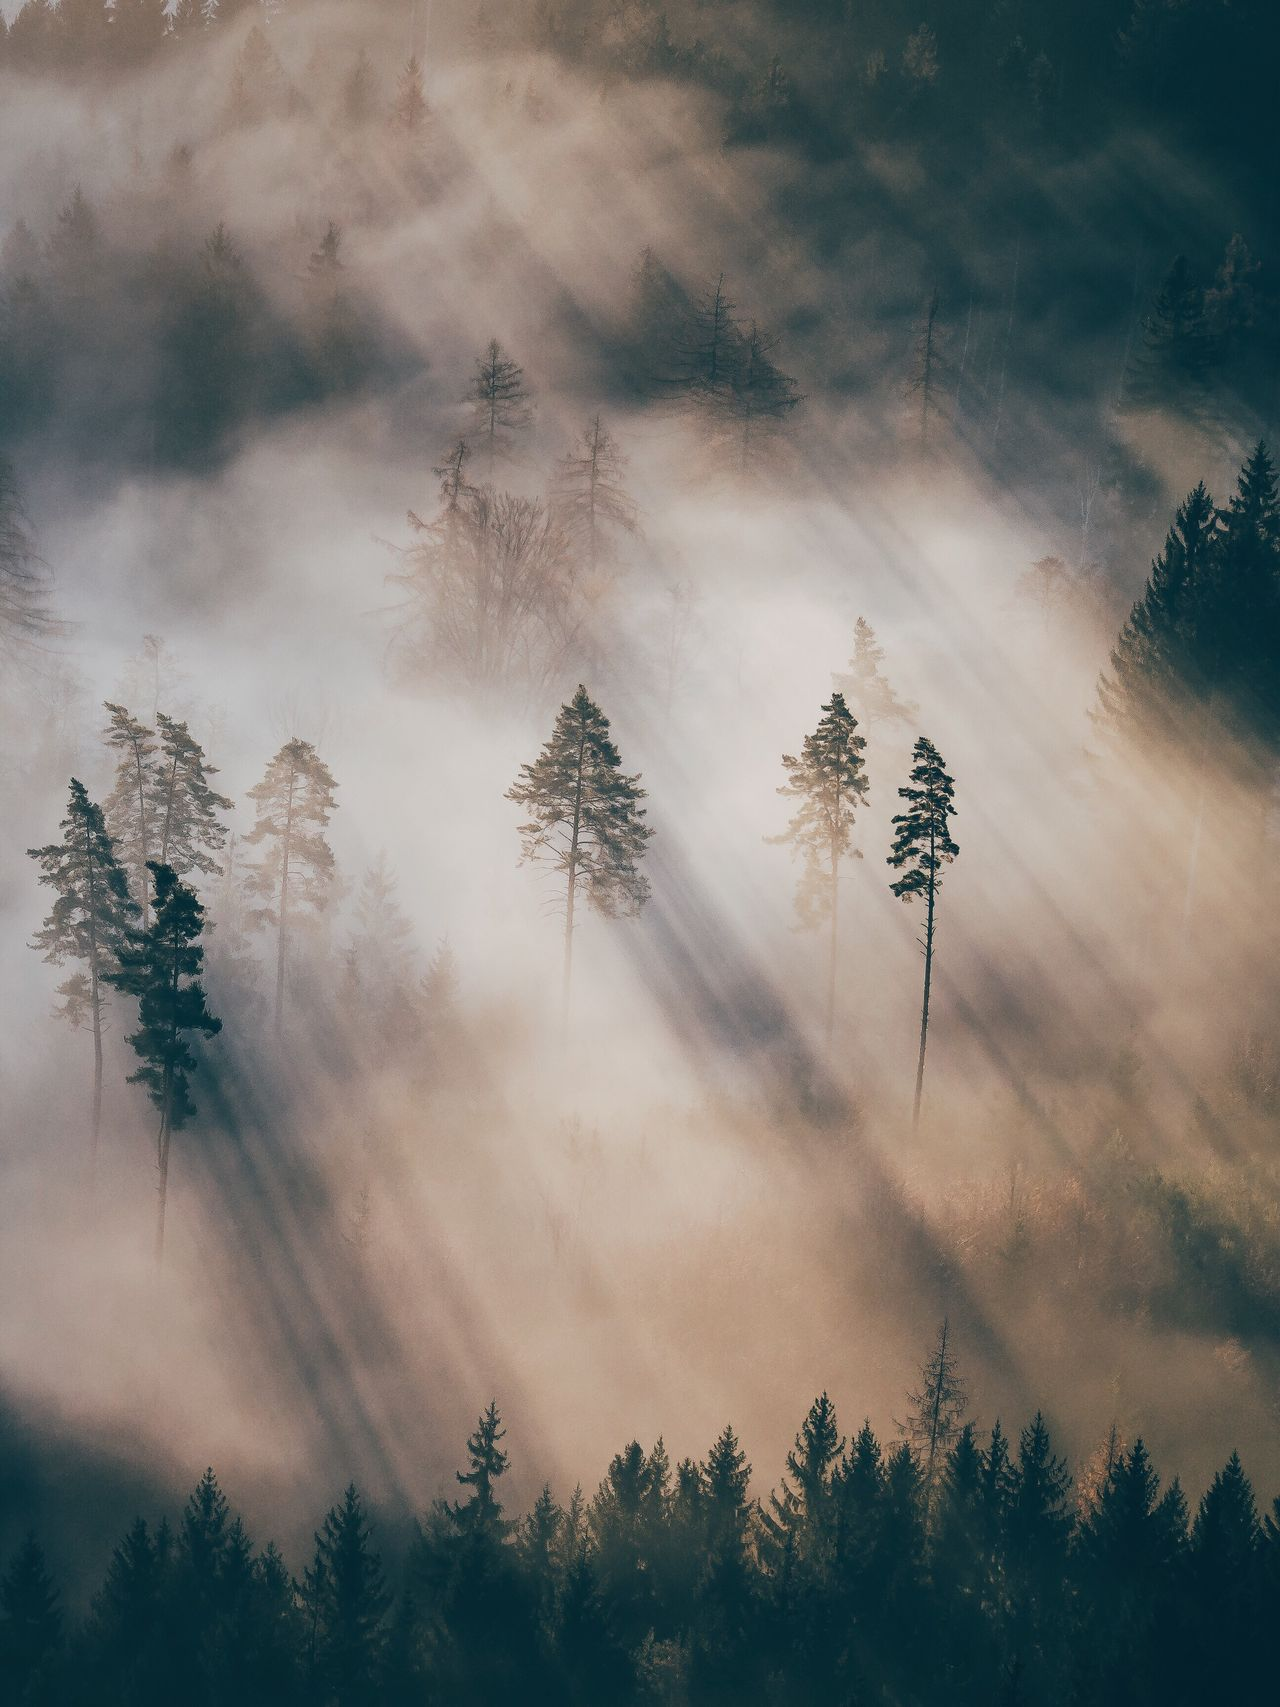 Tree Nature Low Angle View Tranquility Beauty In Nature No People Tranquil Scene Sky Outdoors Environment Scenics Growth Branch Cloud - Sky Treetop Coniferous Tree Day